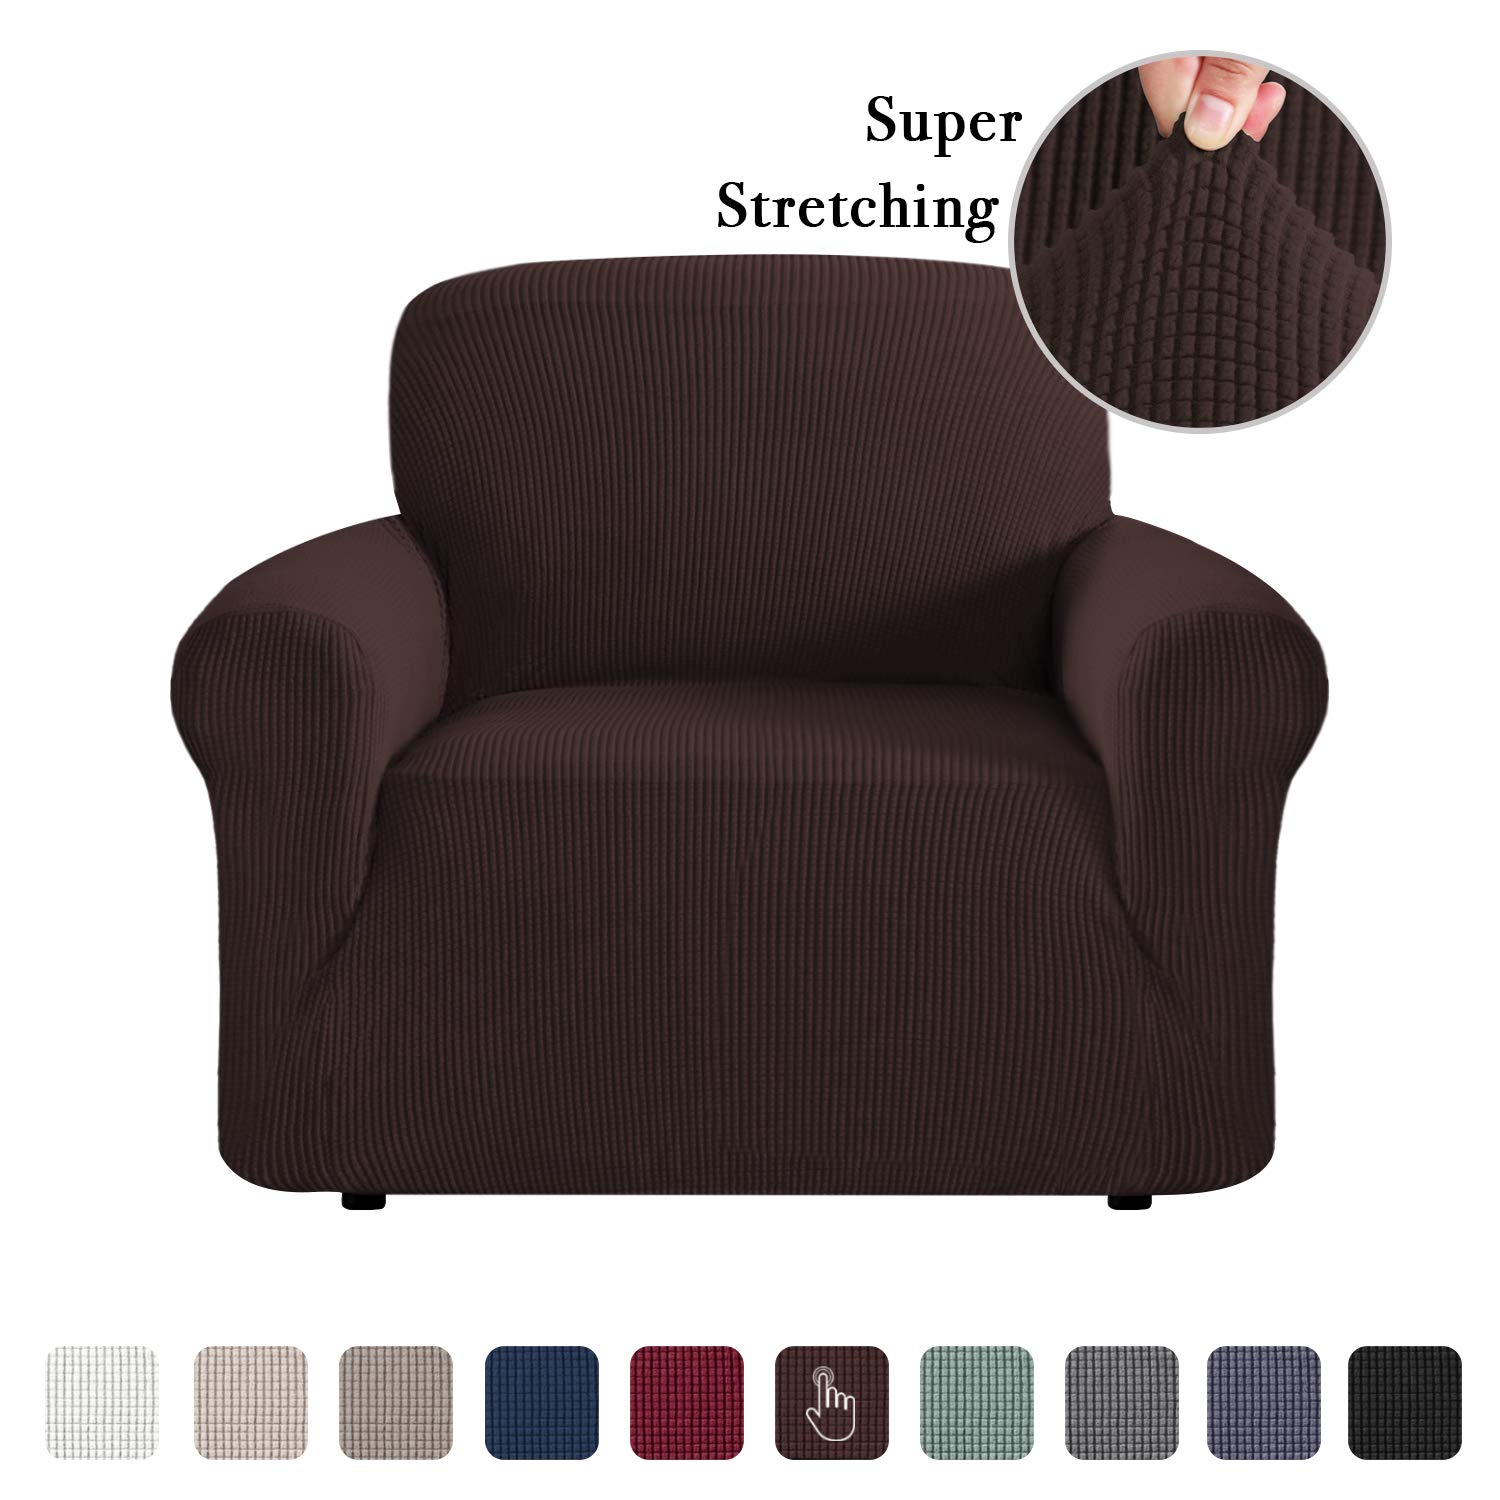 Wondrous Strech Chair Covers Sofa Cover For Moving Furniture Covers Sofa Protector Jacquard Spandex Couch Covers For Living Room Form Fitted Sofa Slipcover 1 Andrewgaddart Wooden Chair Designs For Living Room Andrewgaddartcom